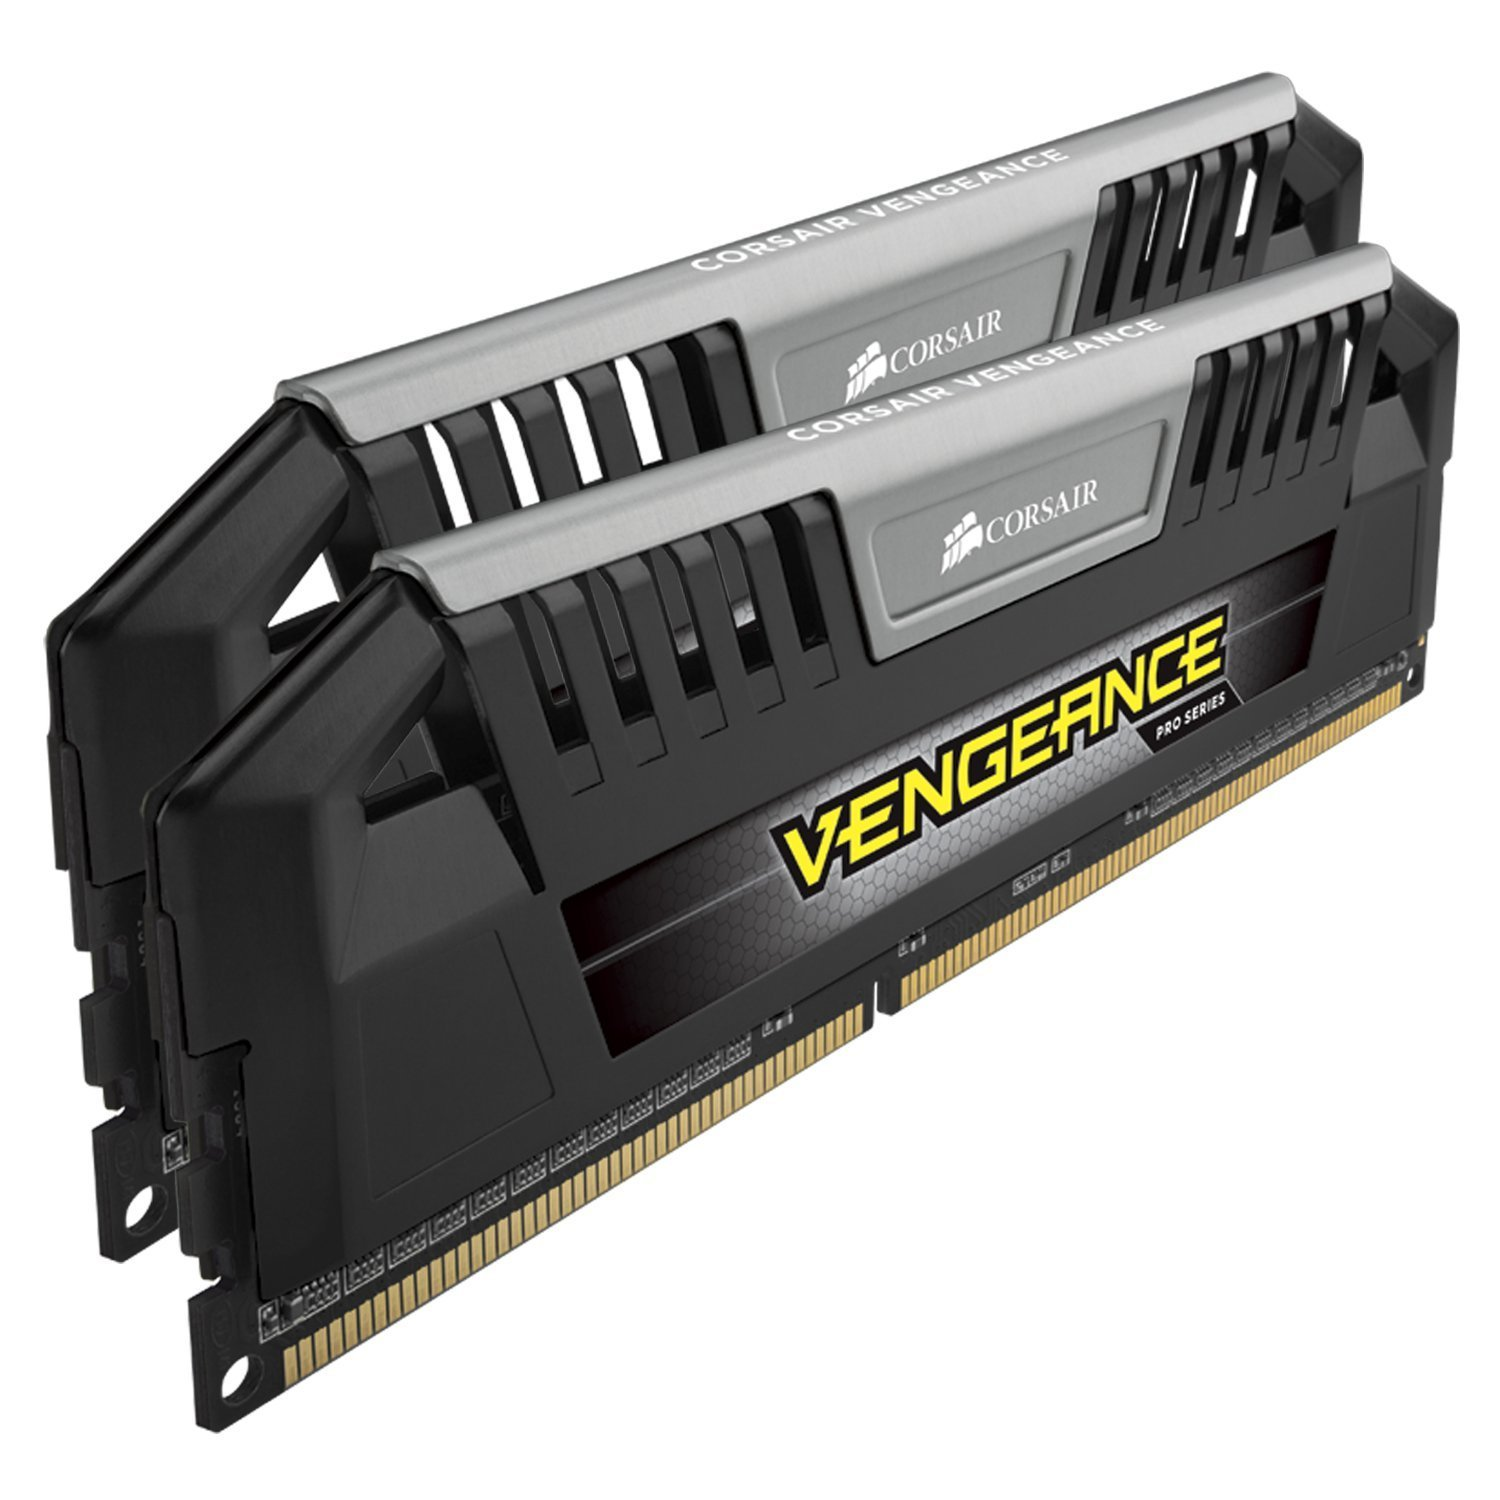 Memoria Ram 16gb Corsair Cmy16gx3m2a1600c9 Vengeance Pro Series (2x8gb) Ddr3 1600 Mhz (pc3 12800) 1.5v